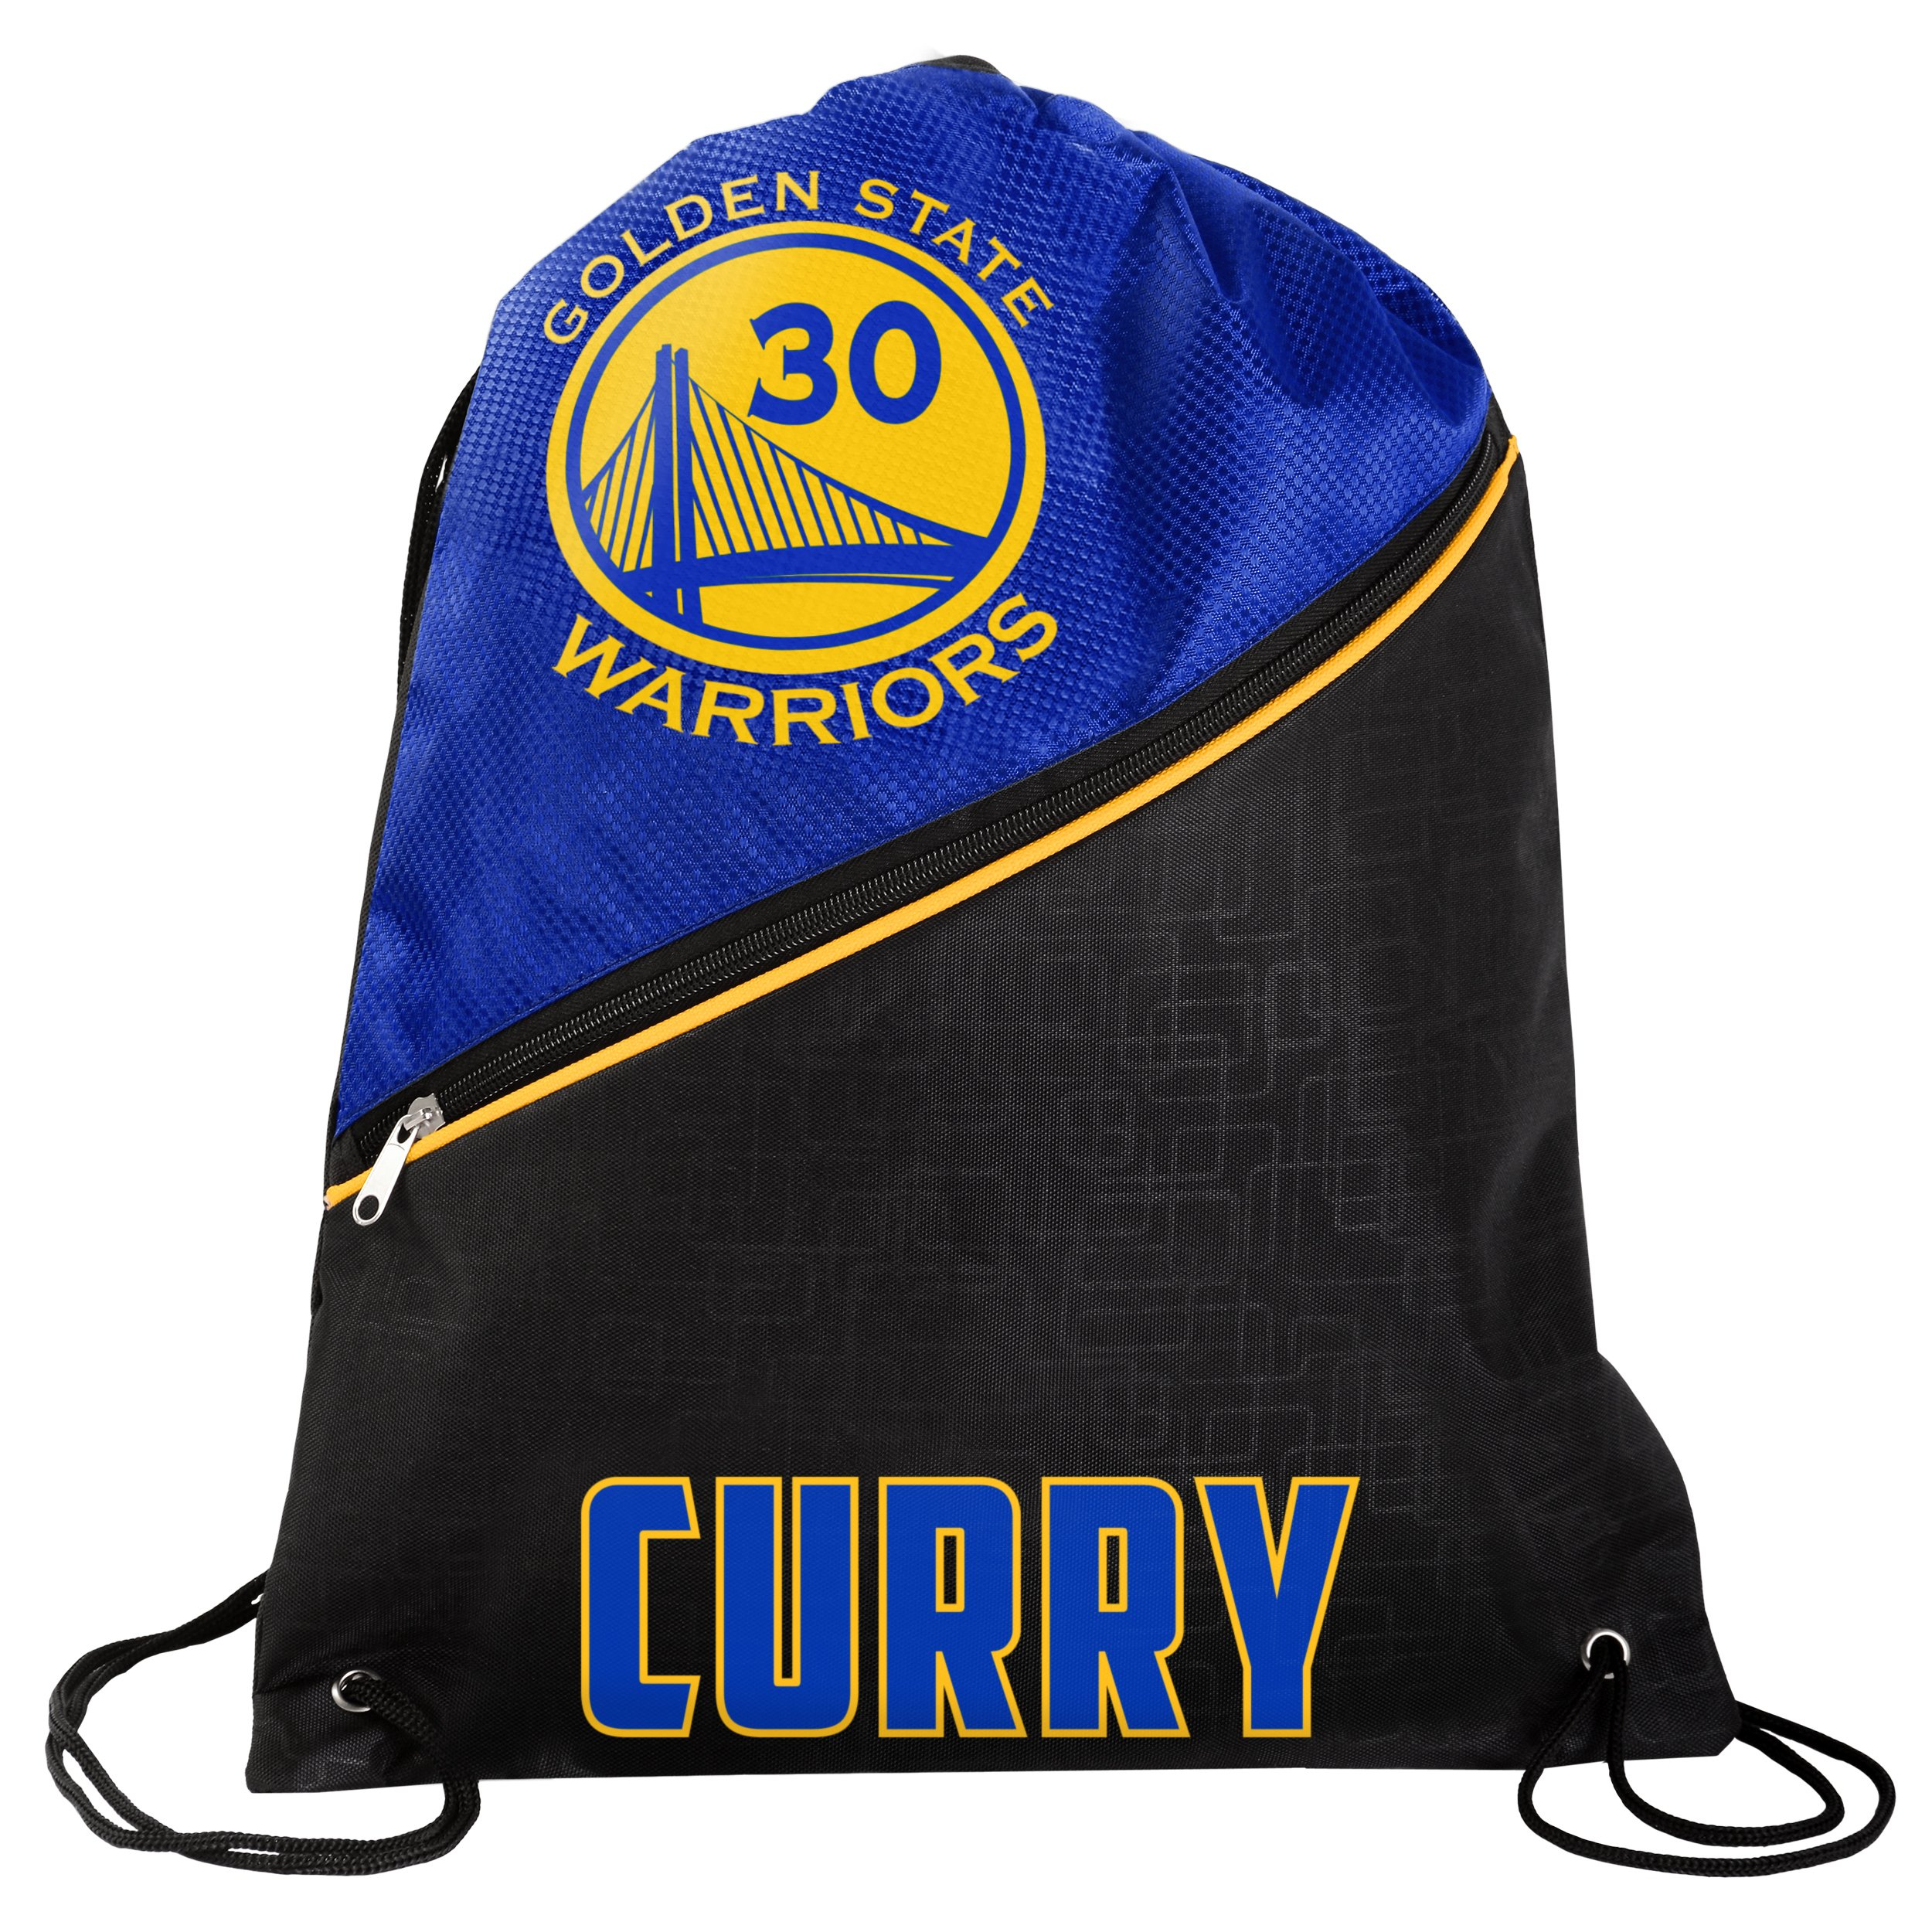 Golden State Warriors Official NBA High End Diagonal Zipper Drawstring Backpack Gym Bag - Stephen Curry #30 by TBFC